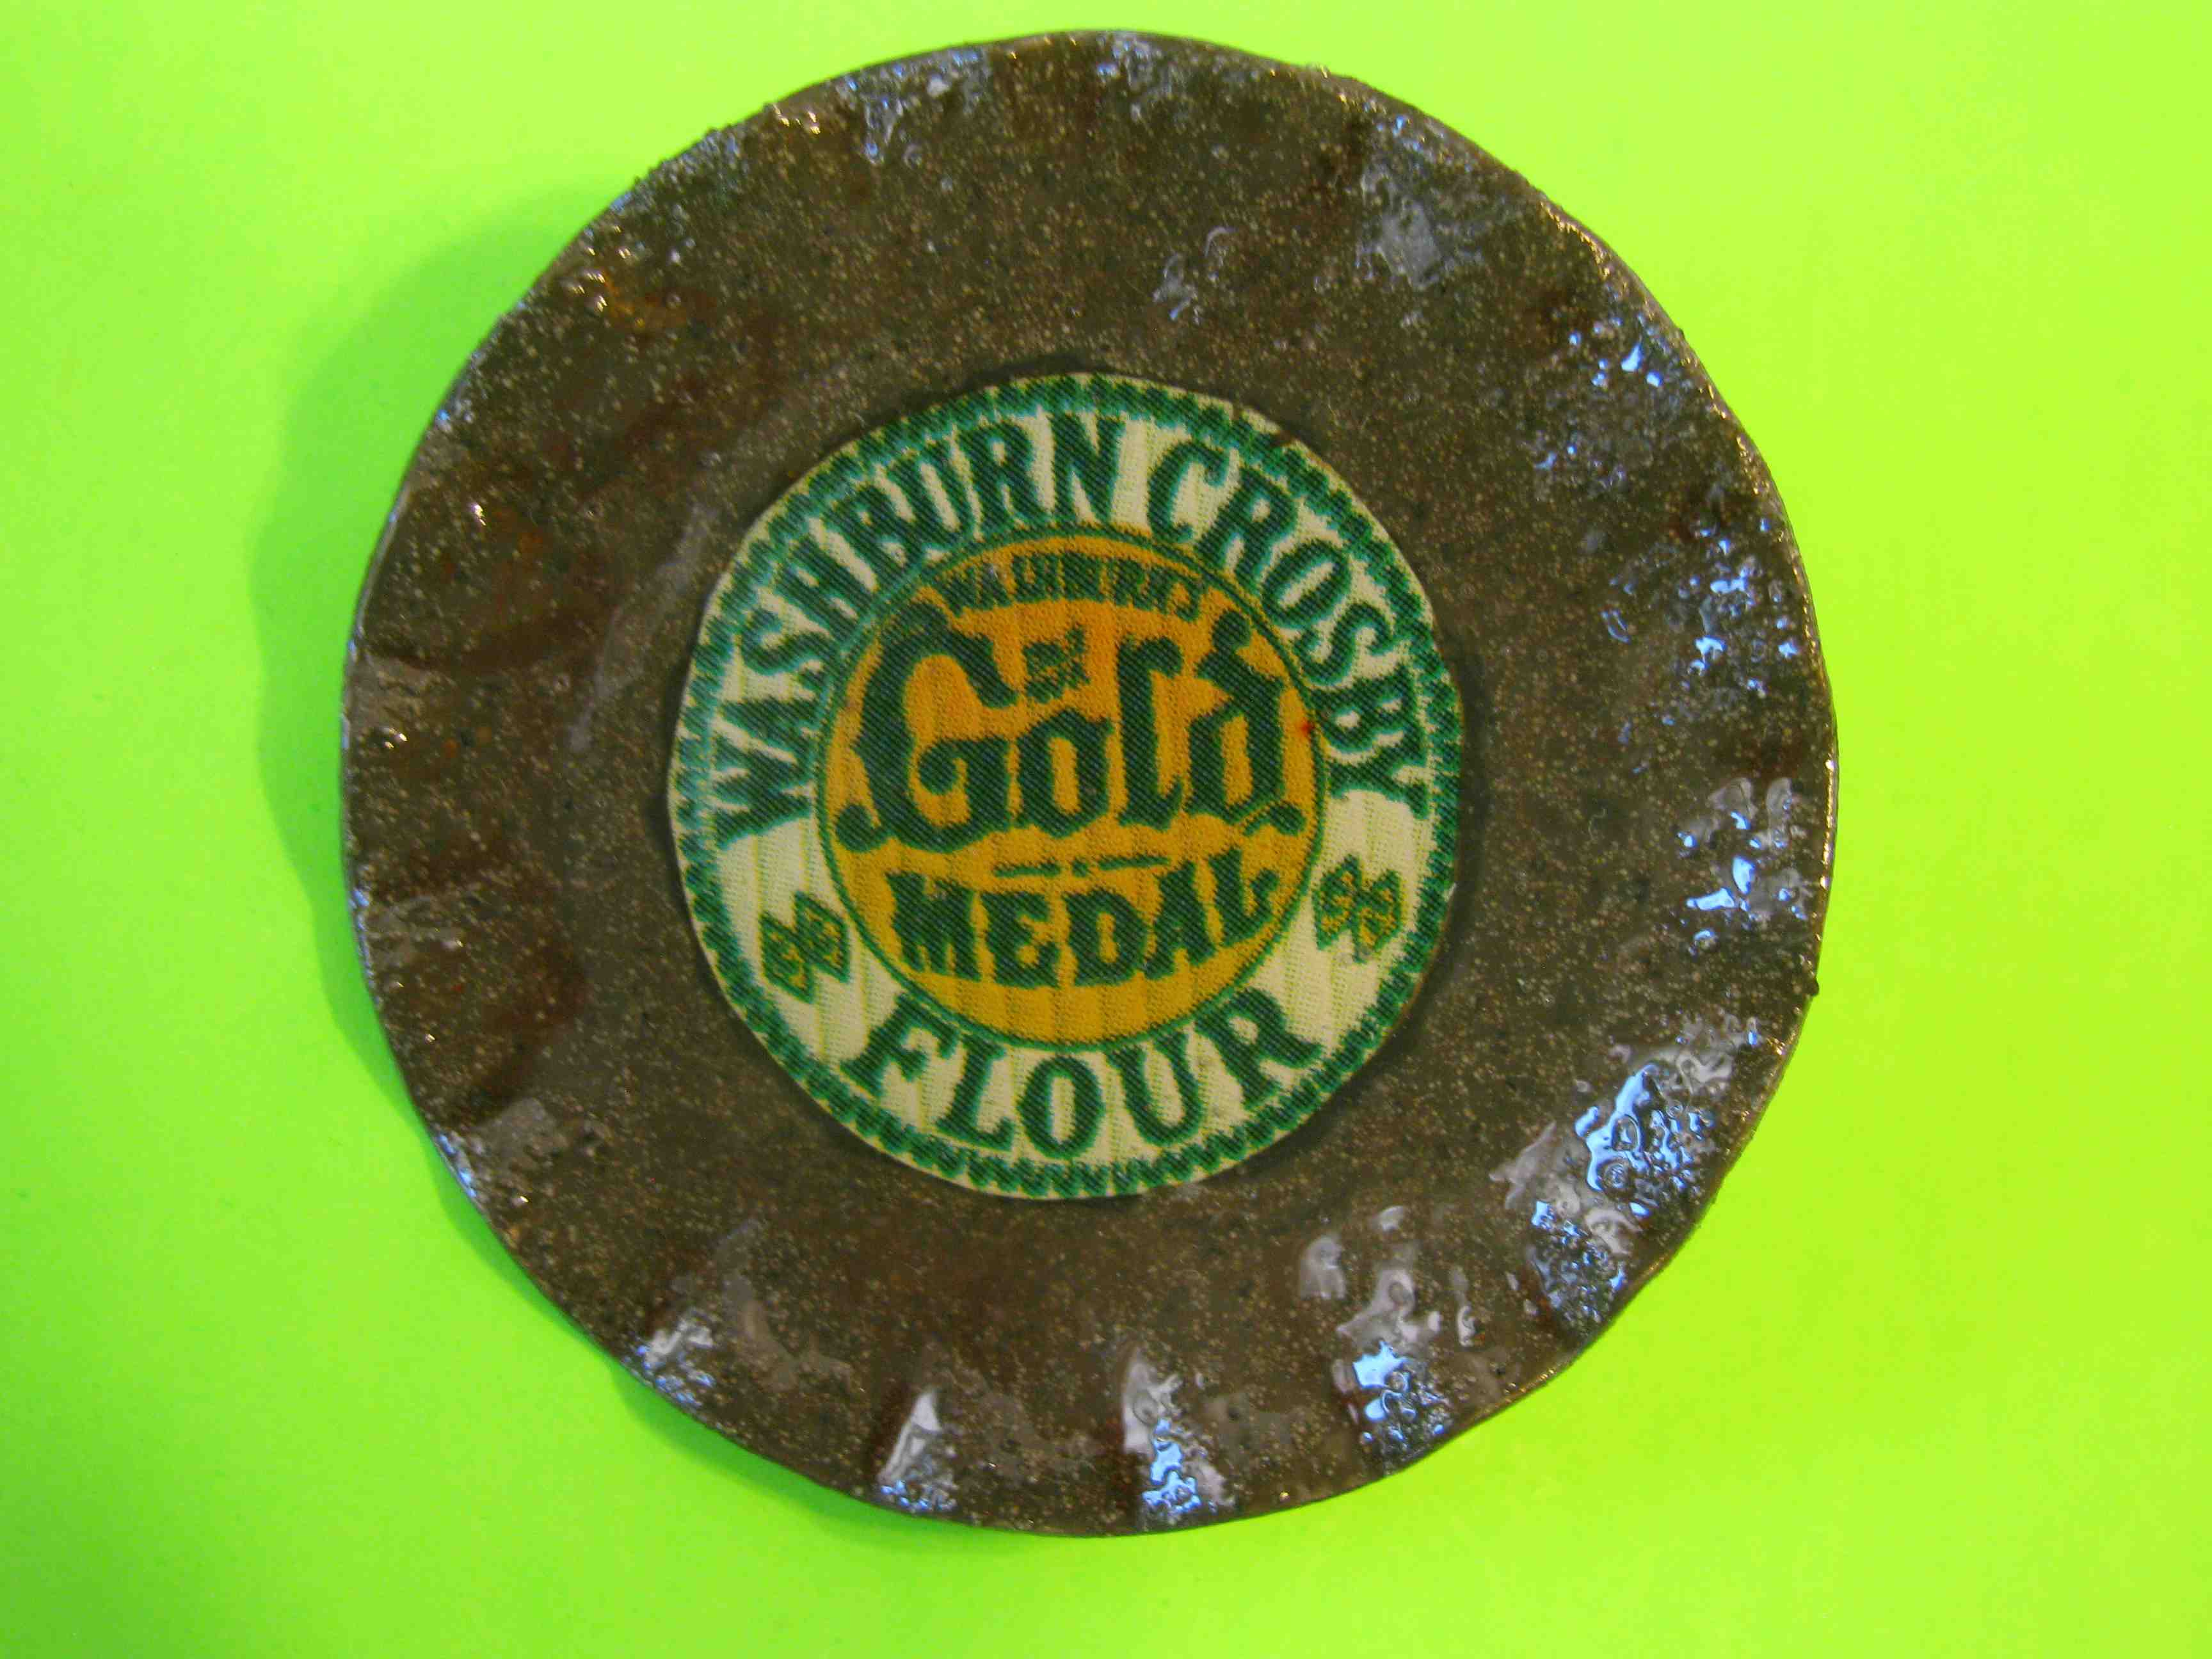 Washburn Crosby Gold Medal Flour Button Large Metal Advertising Button with Metal Loop Shank